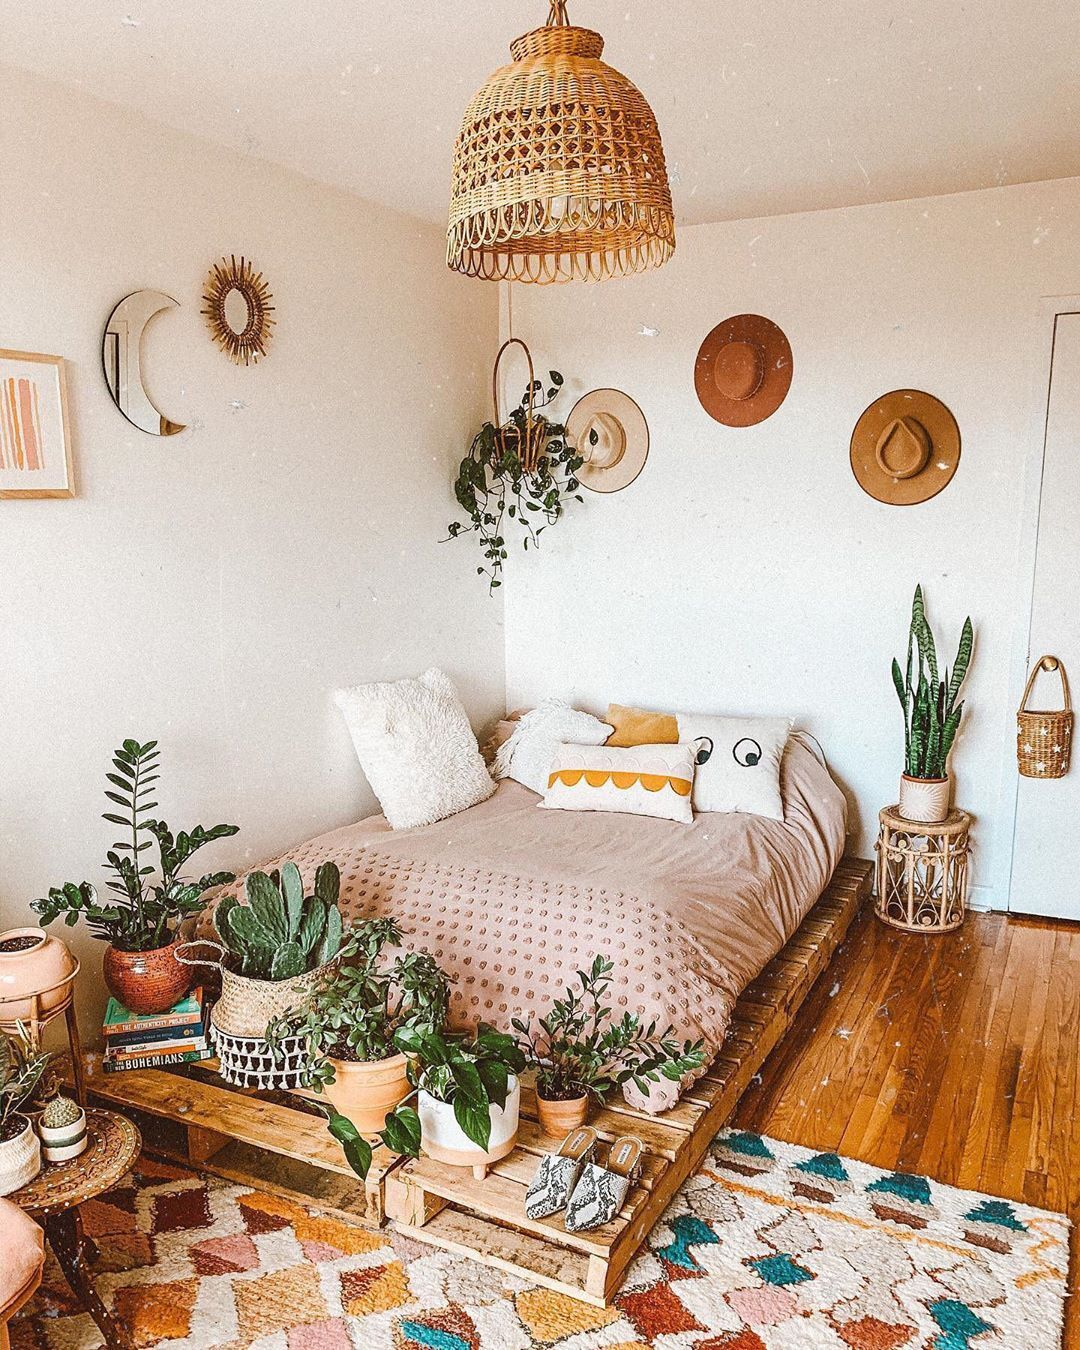 Urban Outfitters decorative bedroom